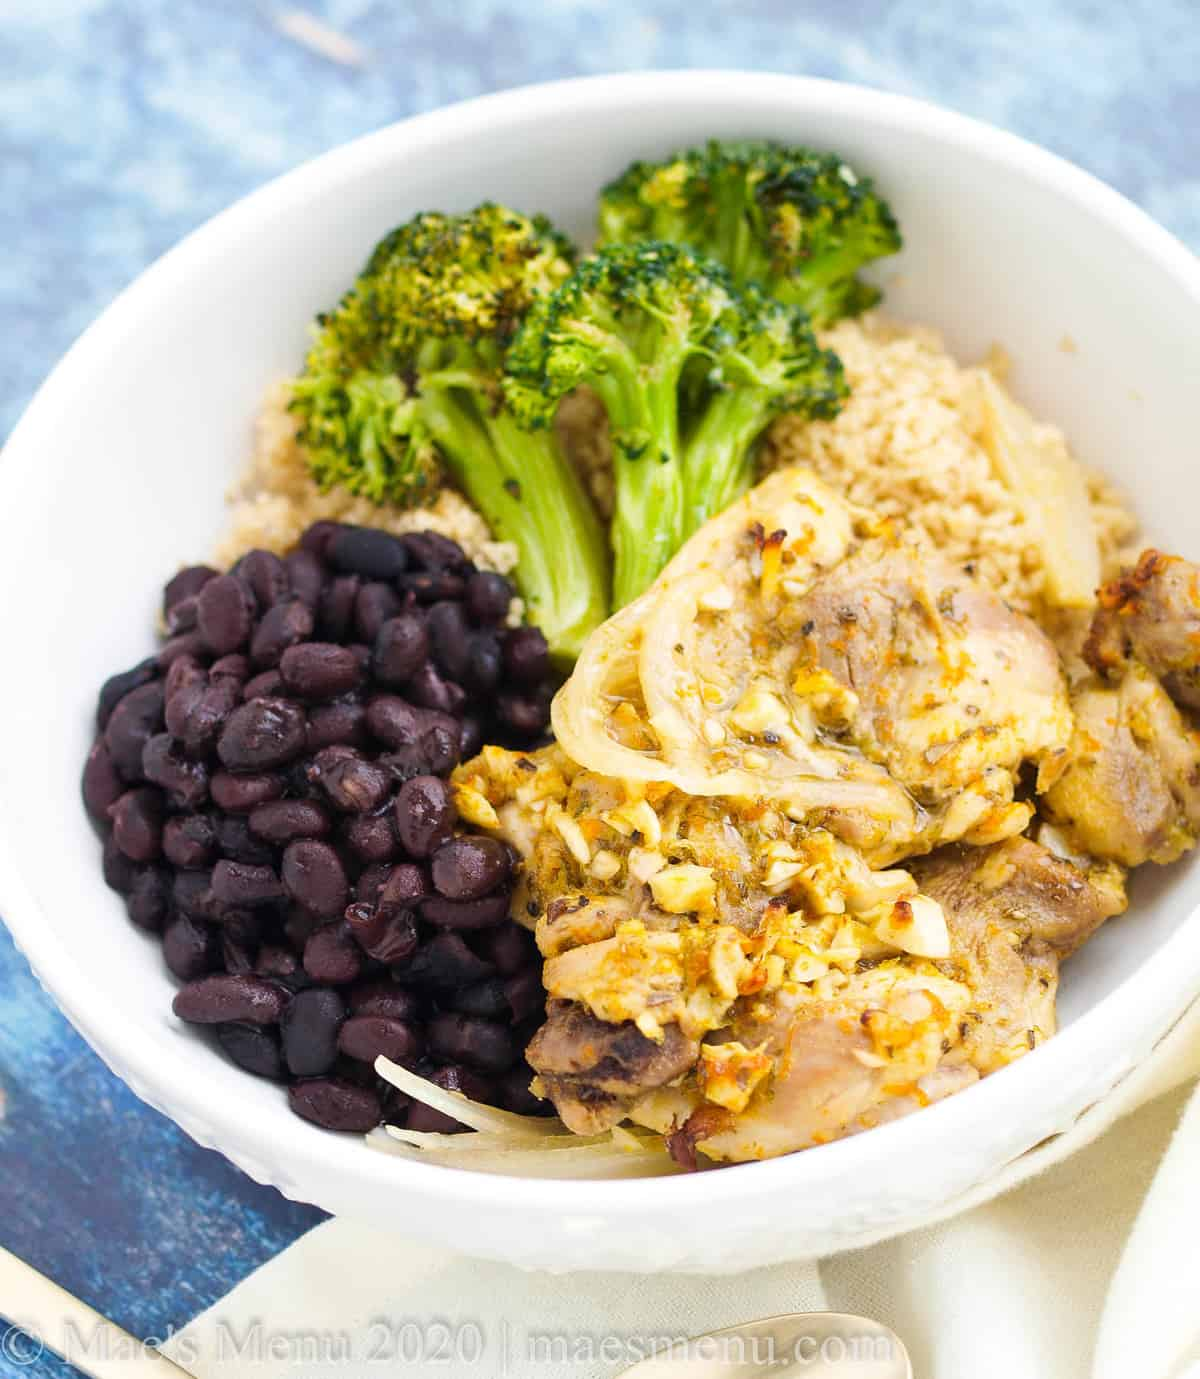 A bowl of cuban mojo chicken with black beans, couscous, and broccoli.